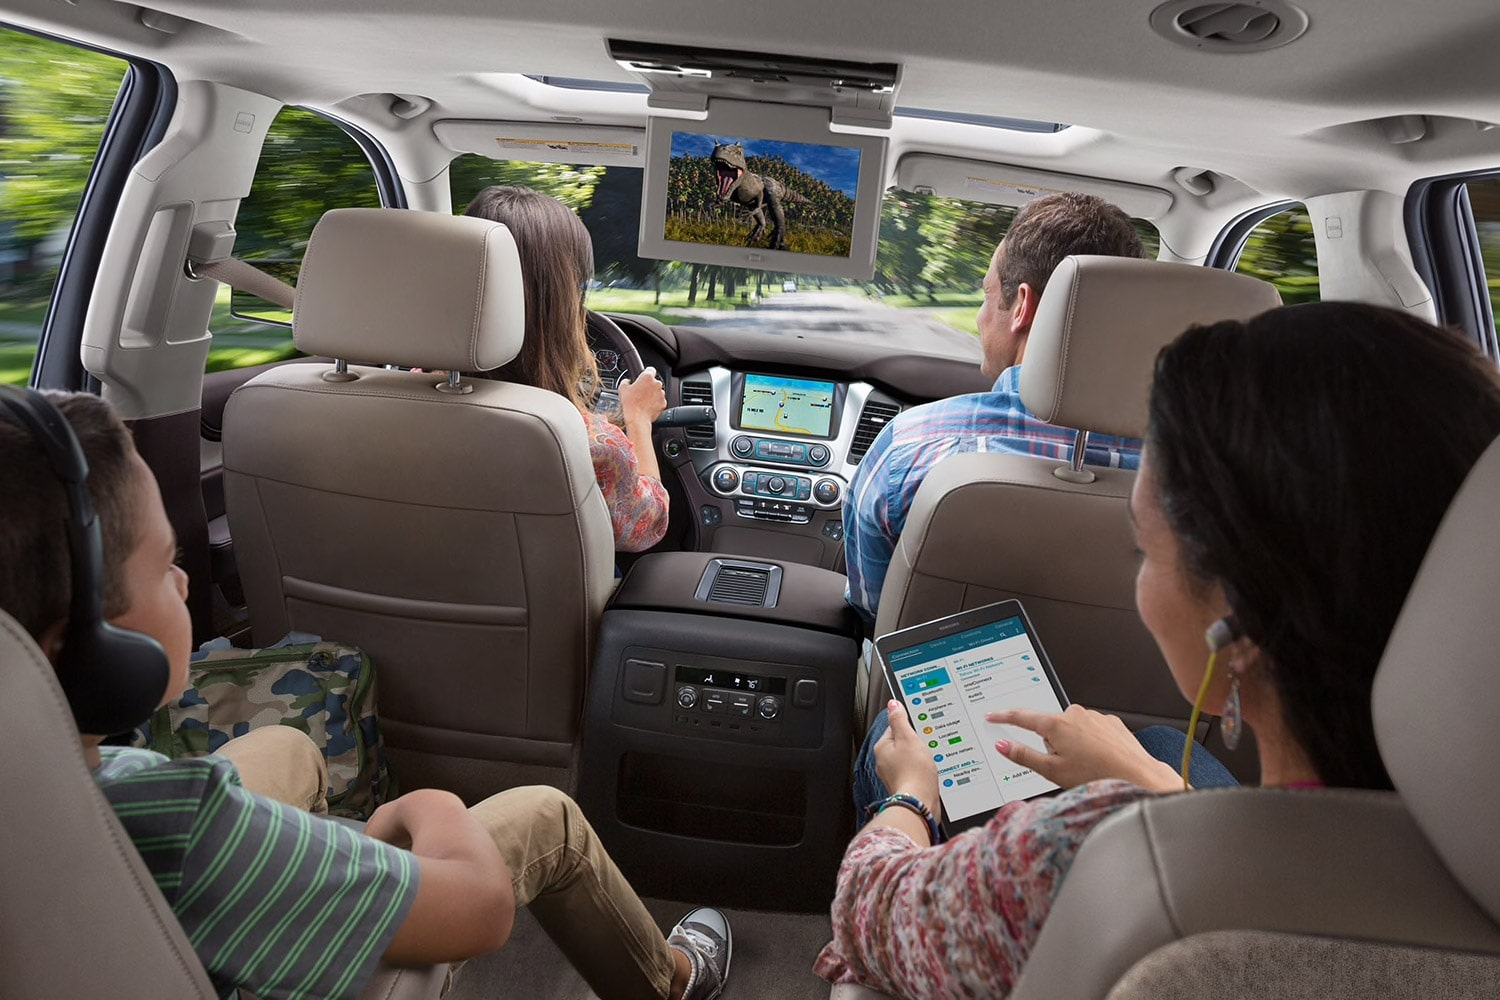 Captivating 2018 Tahoe SUV Design: Seating